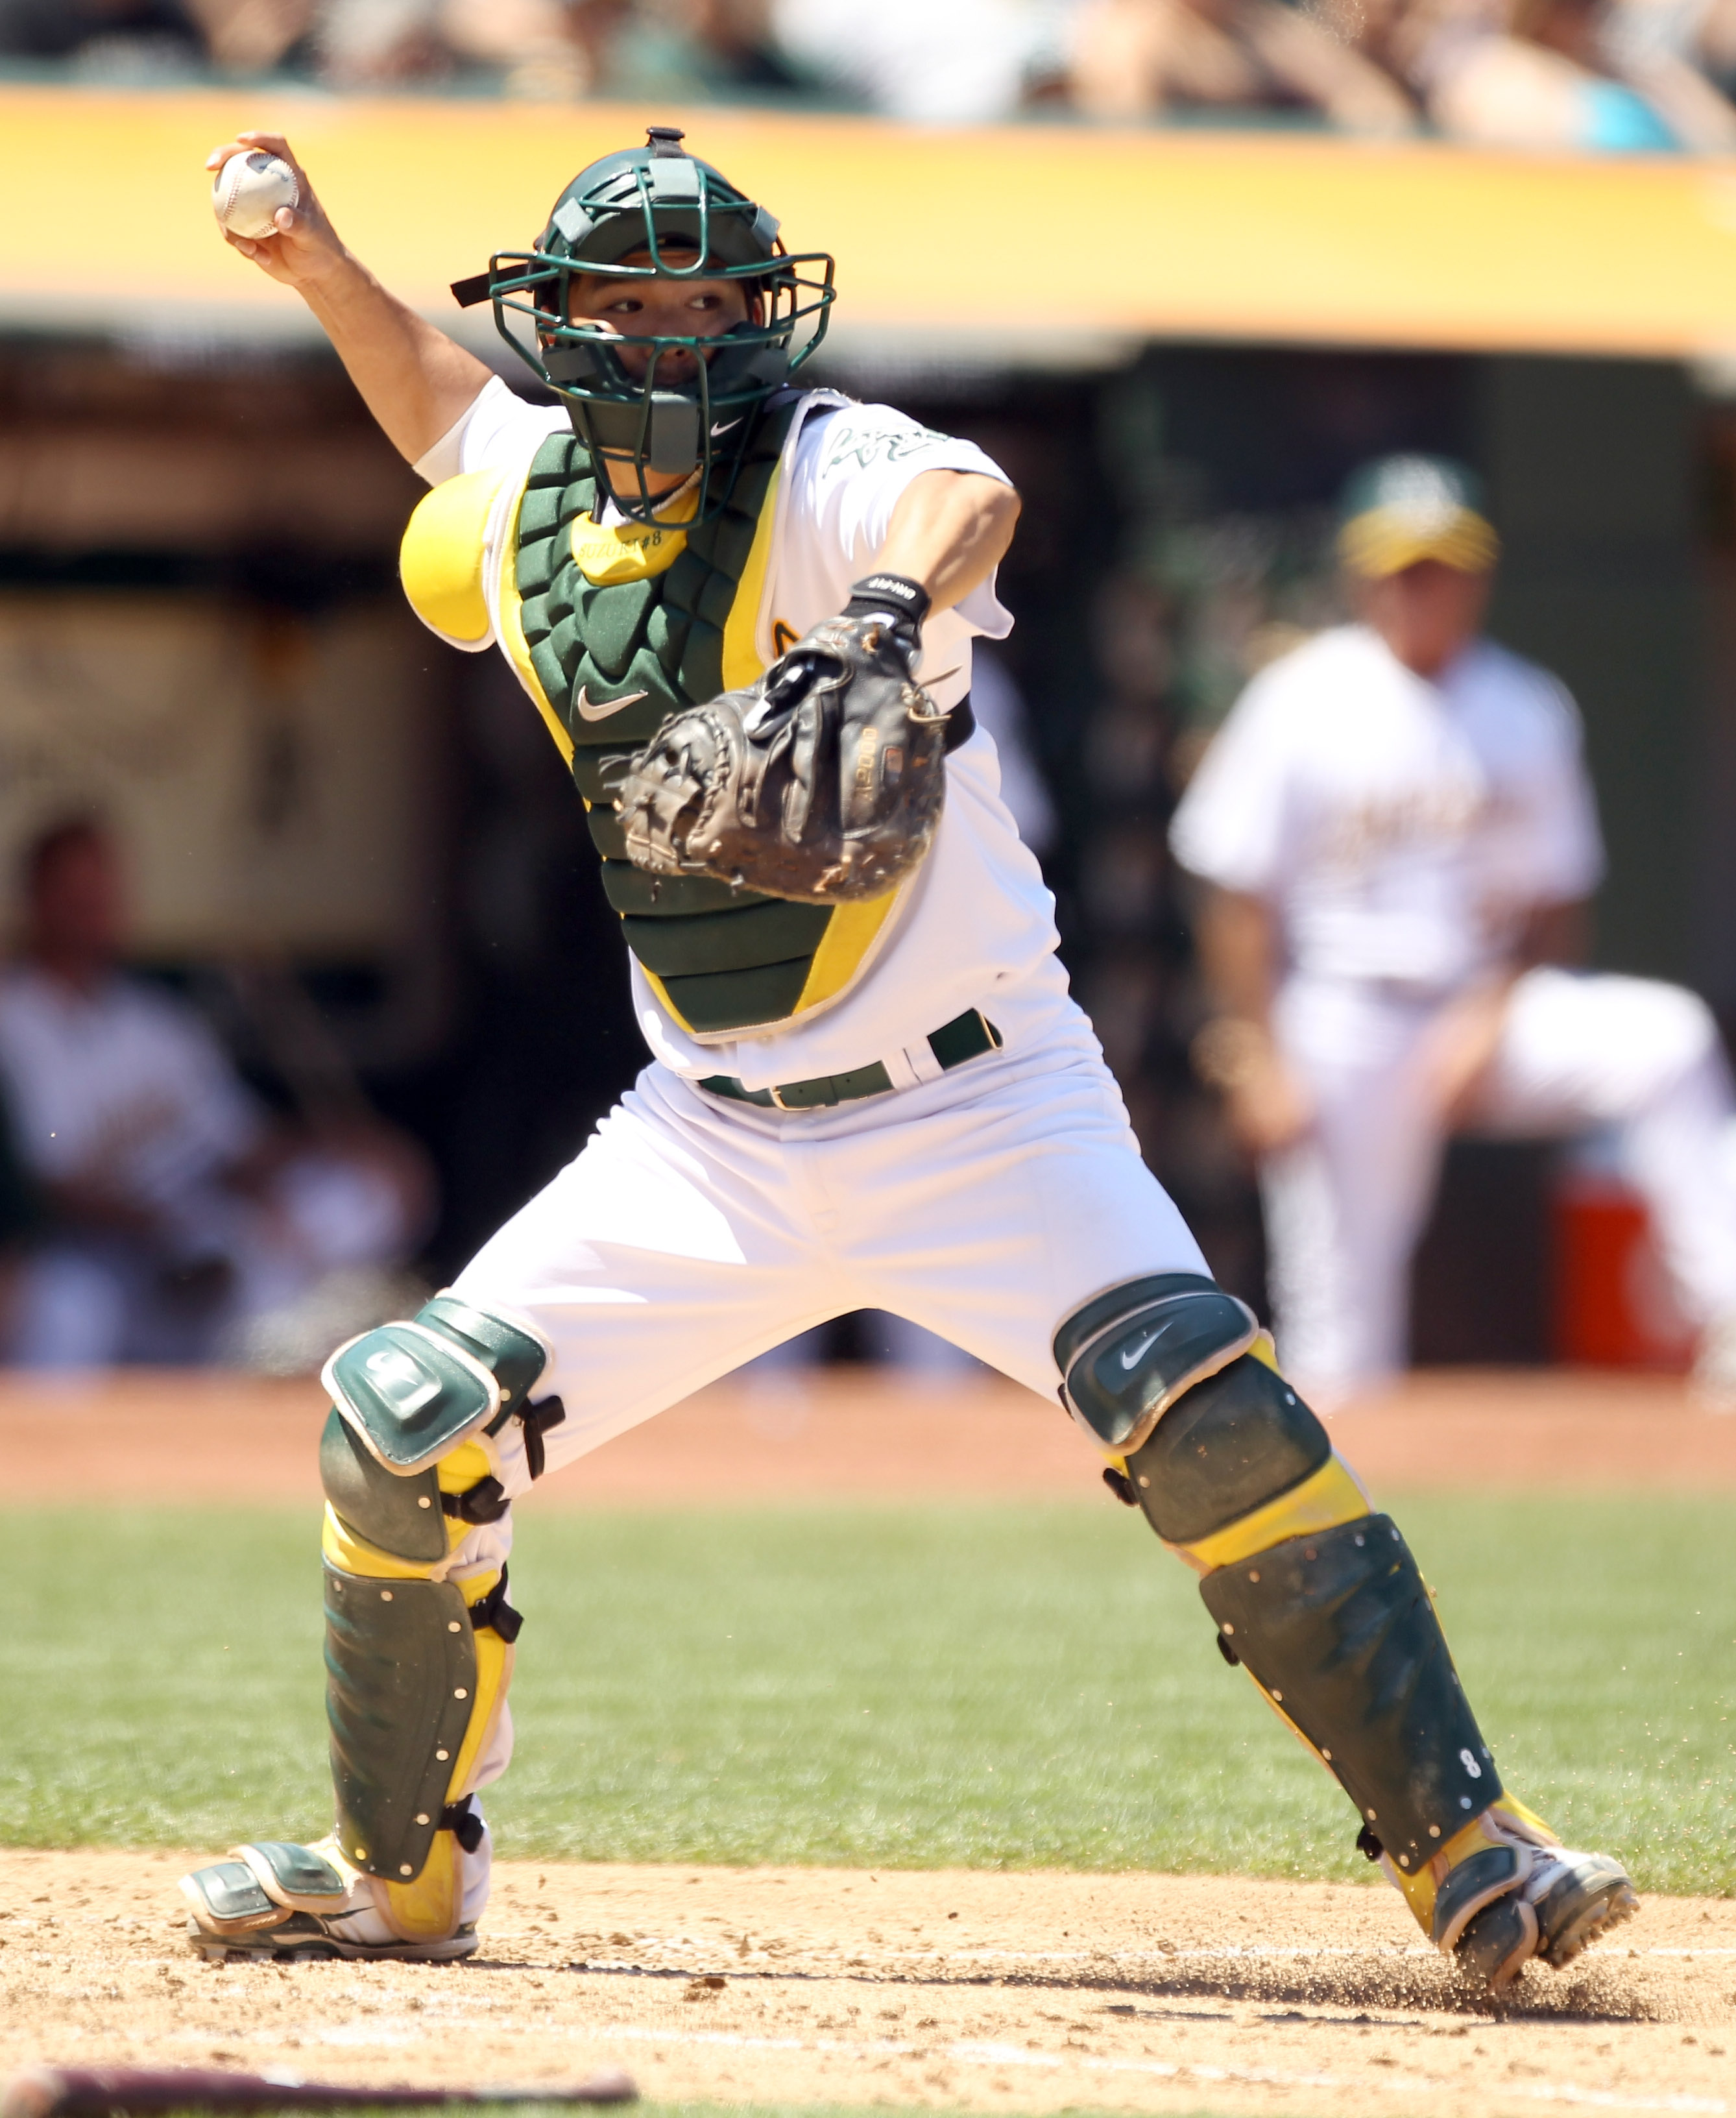 OAKLAND, CA - JULY 11:  Kurt Suzuki #8 of the Oakland Athletics in action against the Los Angeles Angels of Anaheim at the Oakland-Alameda County Coliseum on July 11, 2010 in Oakland, California.  (Photo by Ezra Shaw/Getty Images)